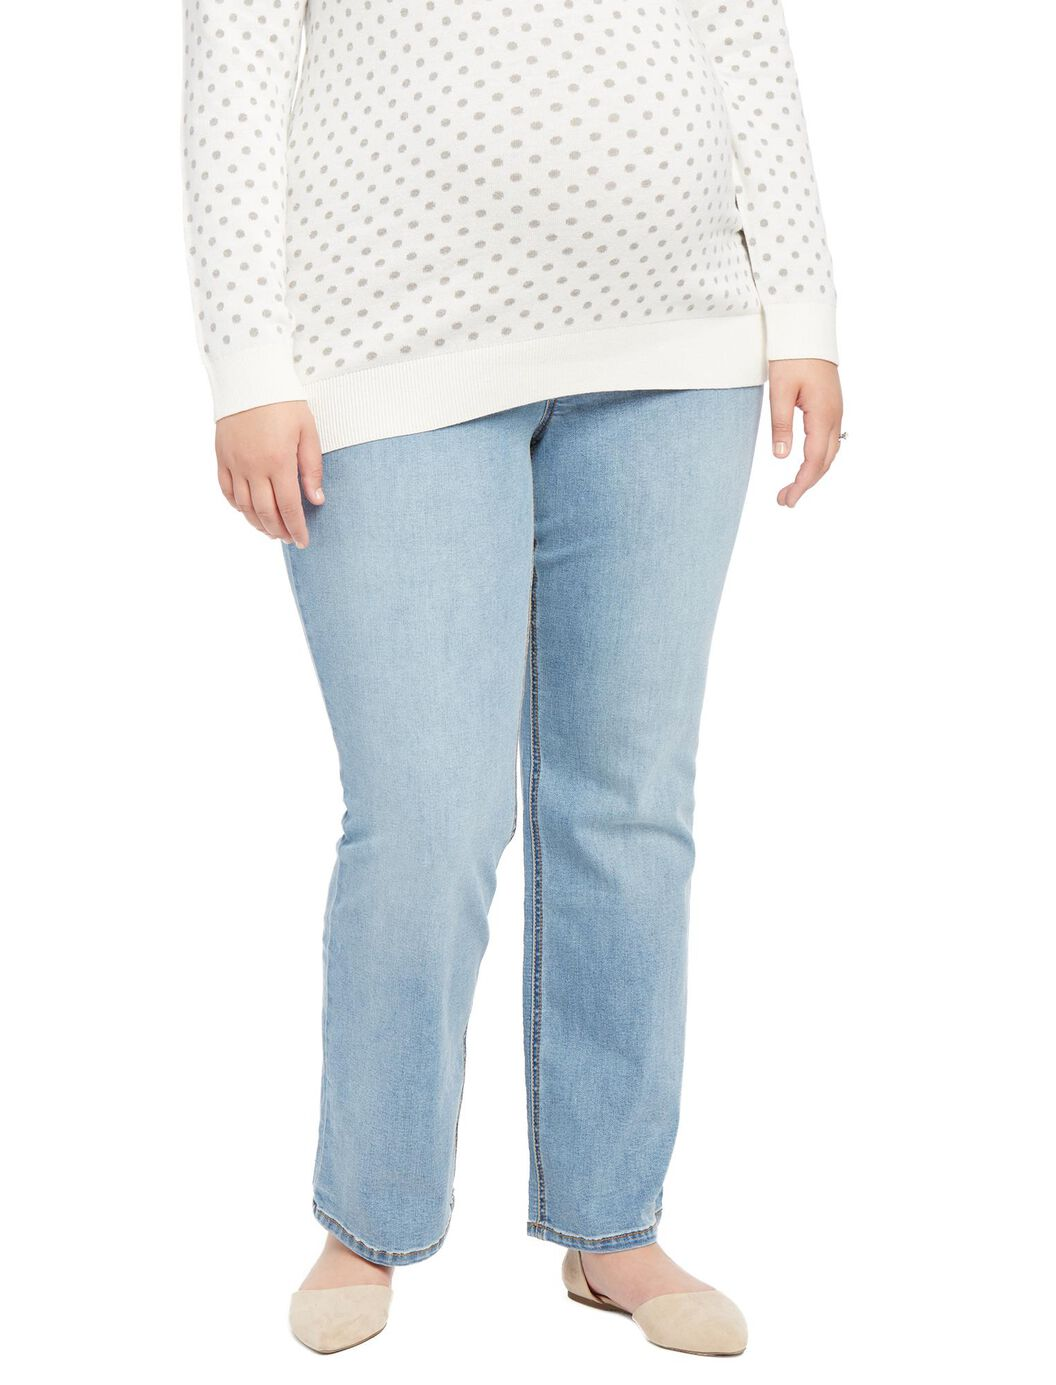 Jessica Simpson Plus Size Secret Fit Belly Boot Maternity Jeans- Light Wash at Motherhood Maternity in Victor, NY | Tuggl